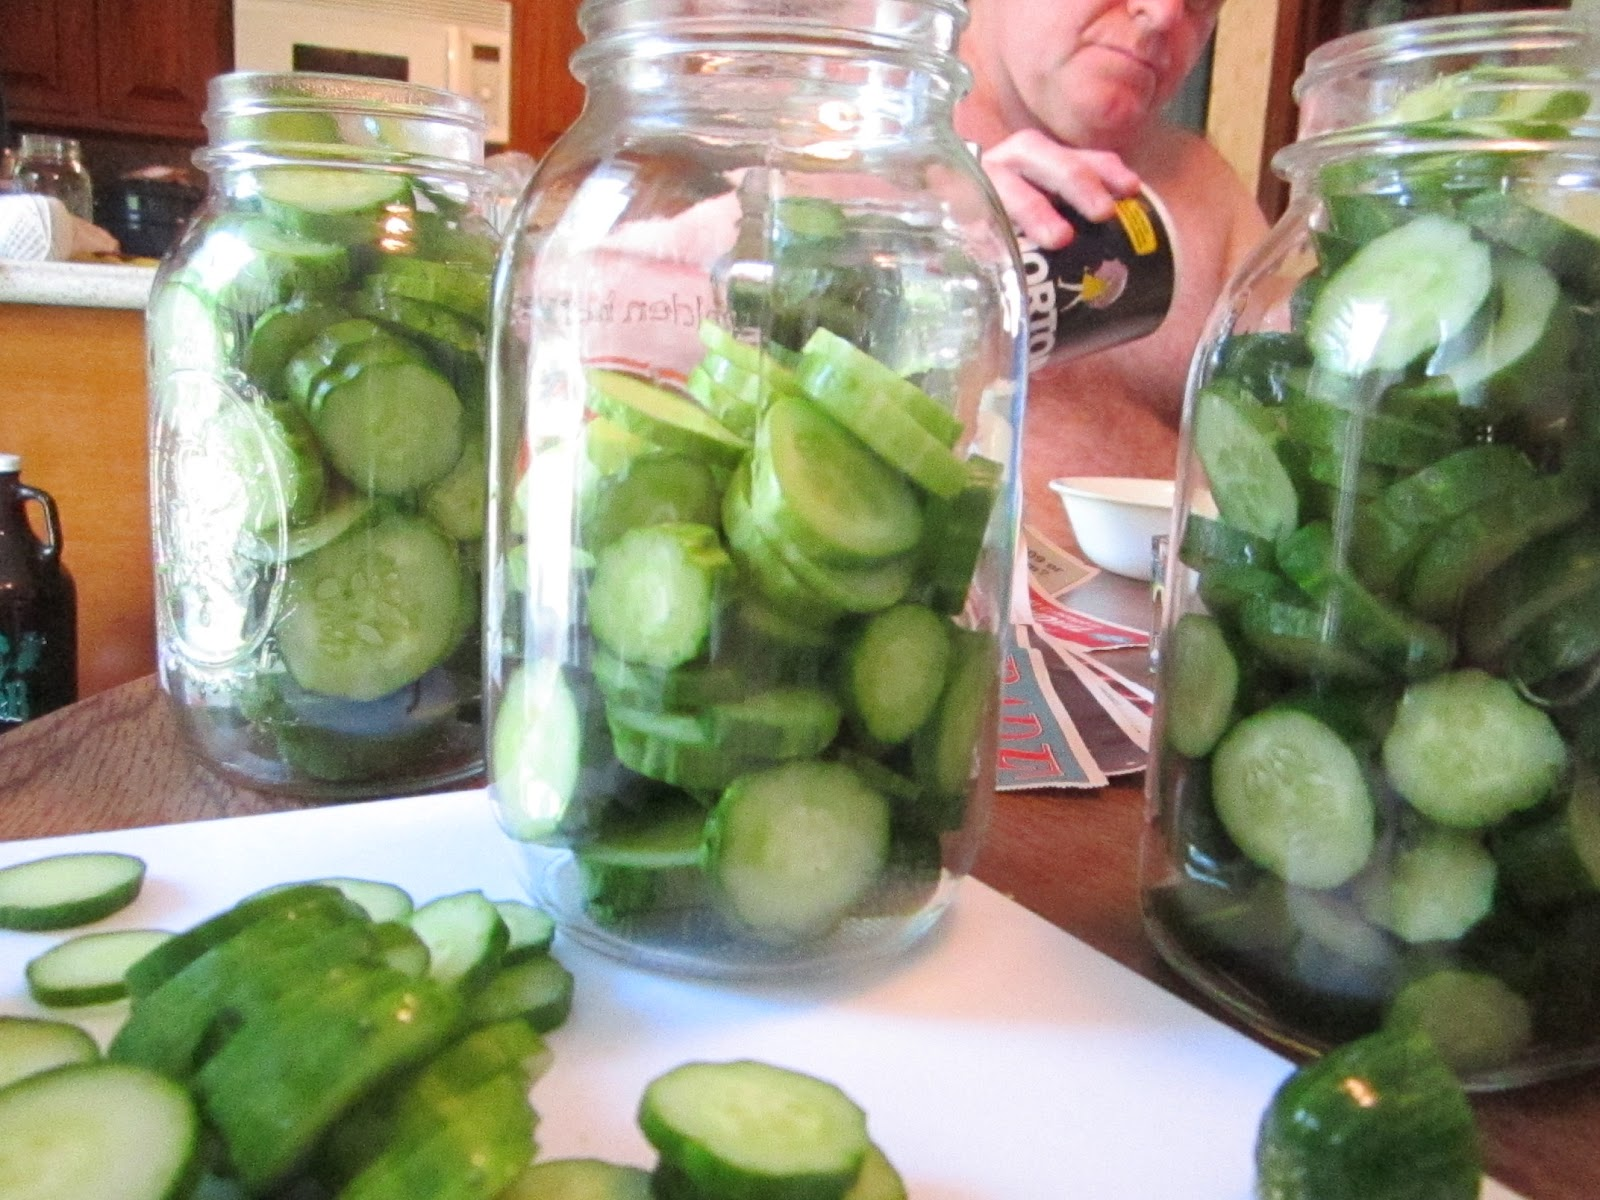 The Retro Redhead: Canning: Spicy Refrigerator Dill Pickles